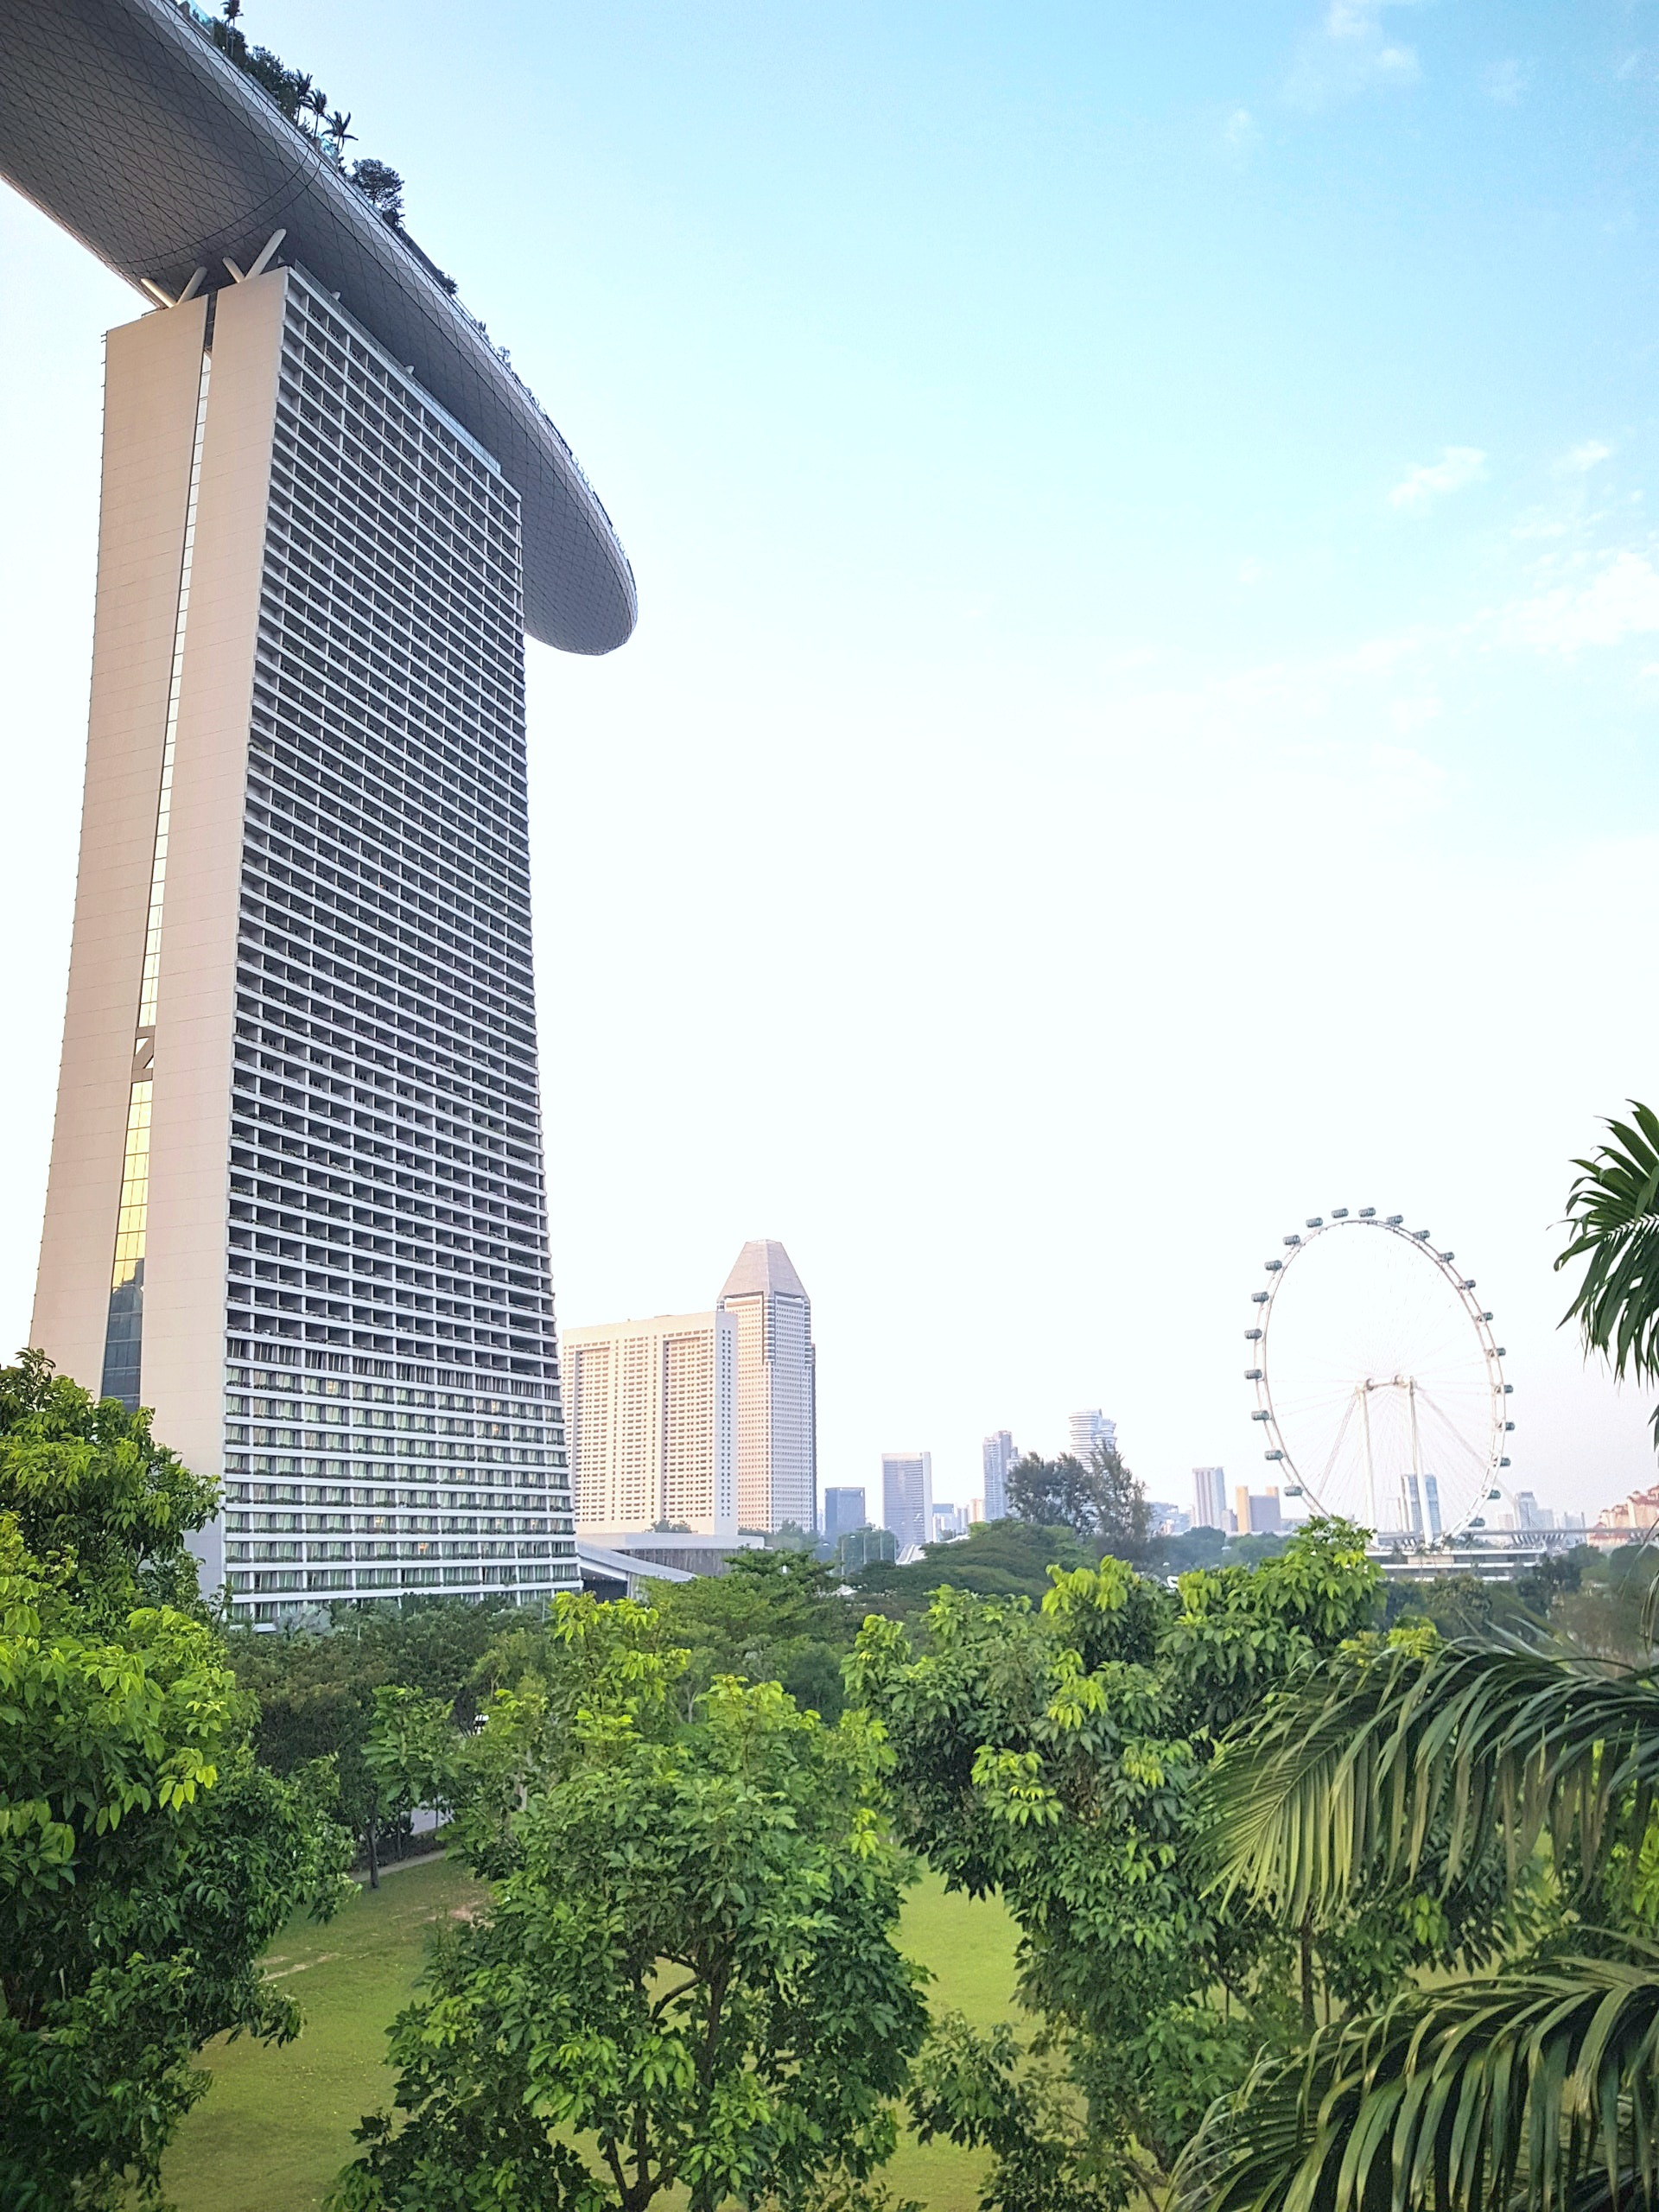 Singapore high-rise building, lush greenery, and a ferris wheel is in the horizon. A beautiful cityscape with green space.